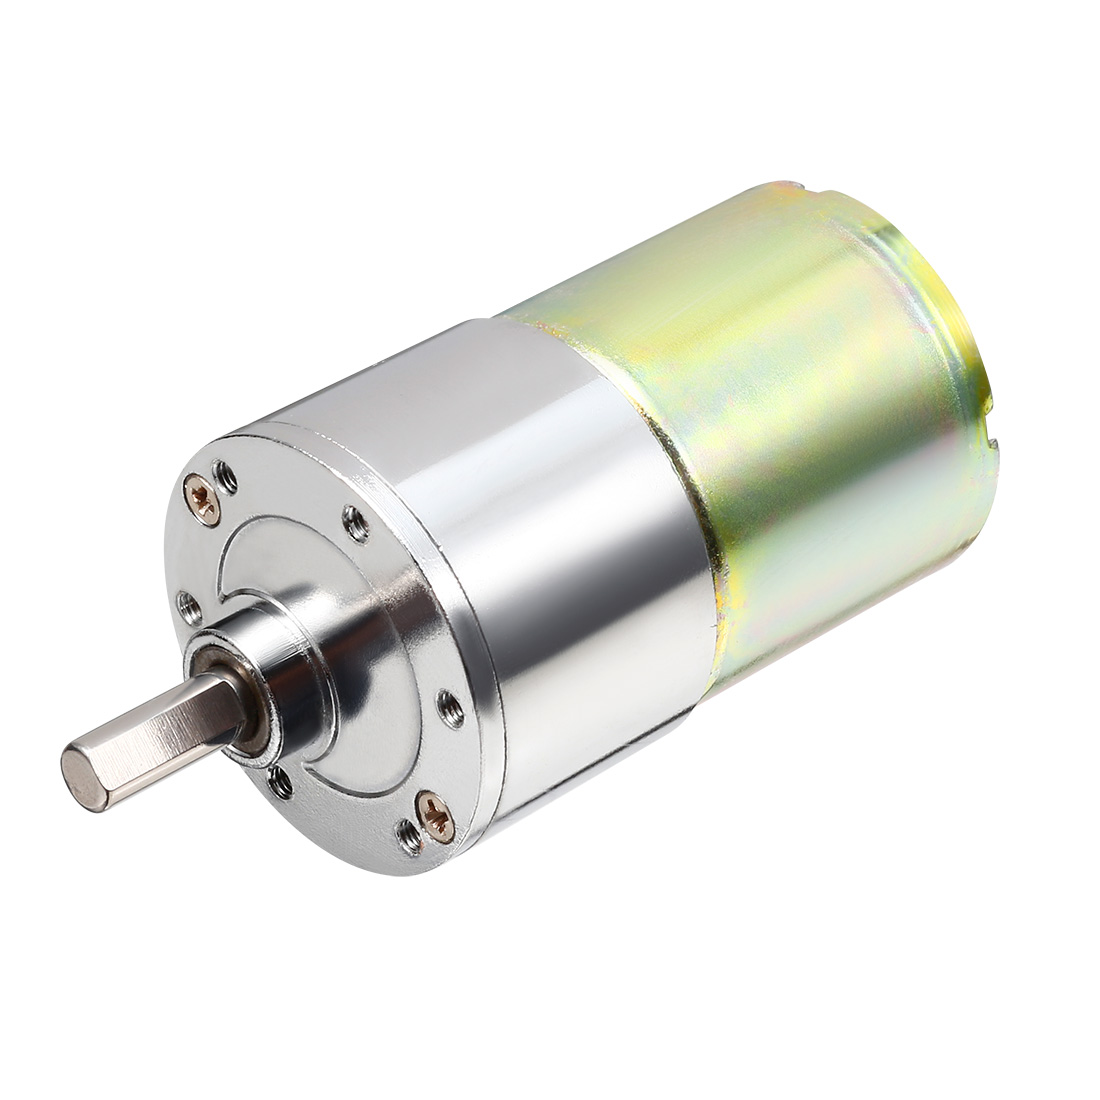 24V DC 50RPM 36mm Diameter Electric Speed Reduction Gear Box Motor